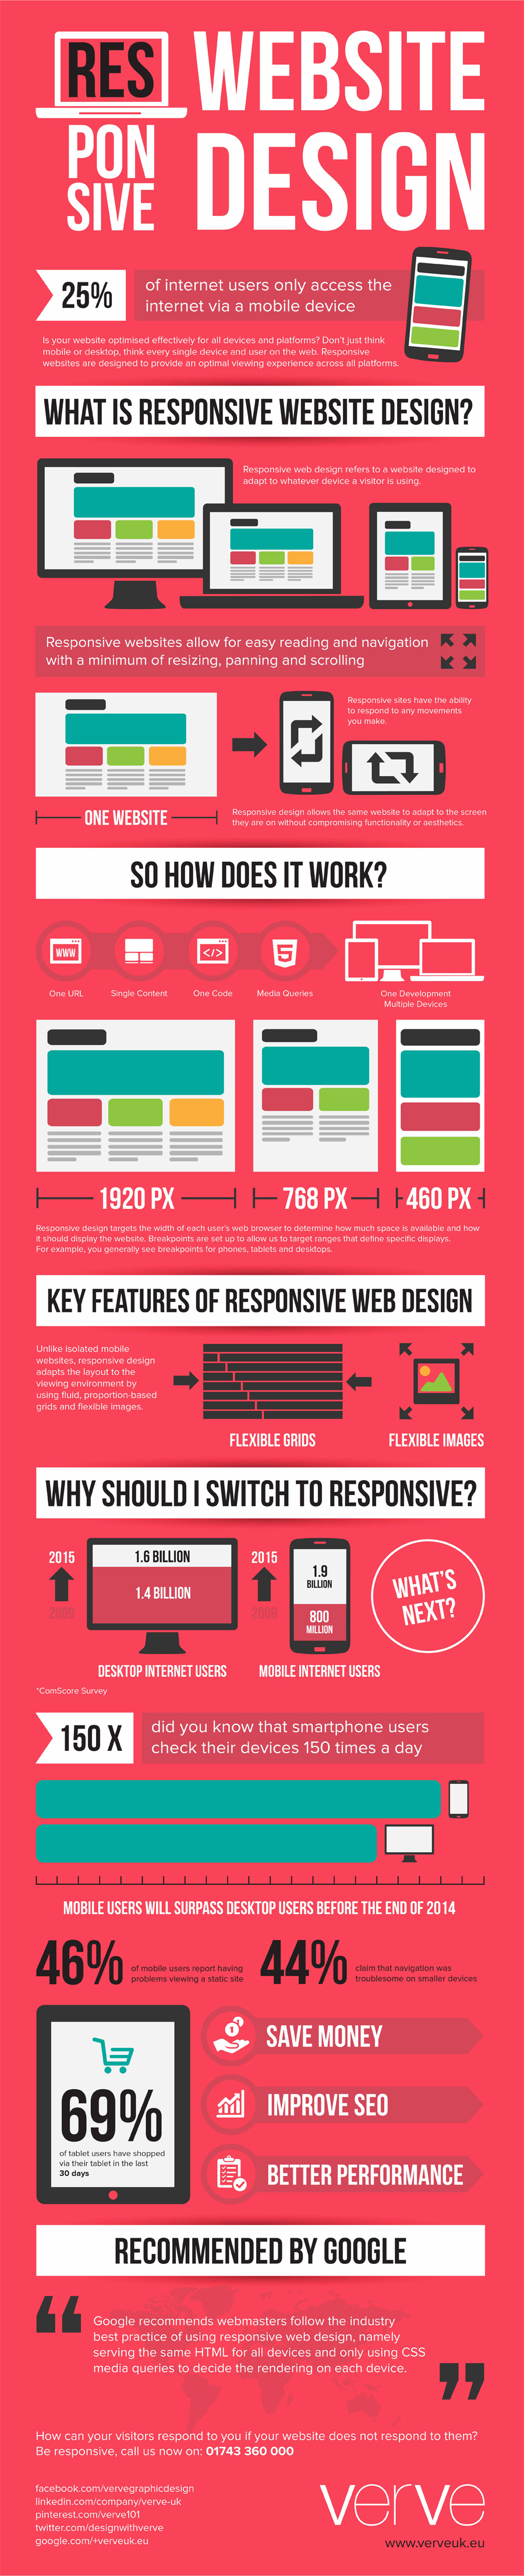 what-is-responsive-website-design-responsive-verve-infografia-blog-hostalia-hosting